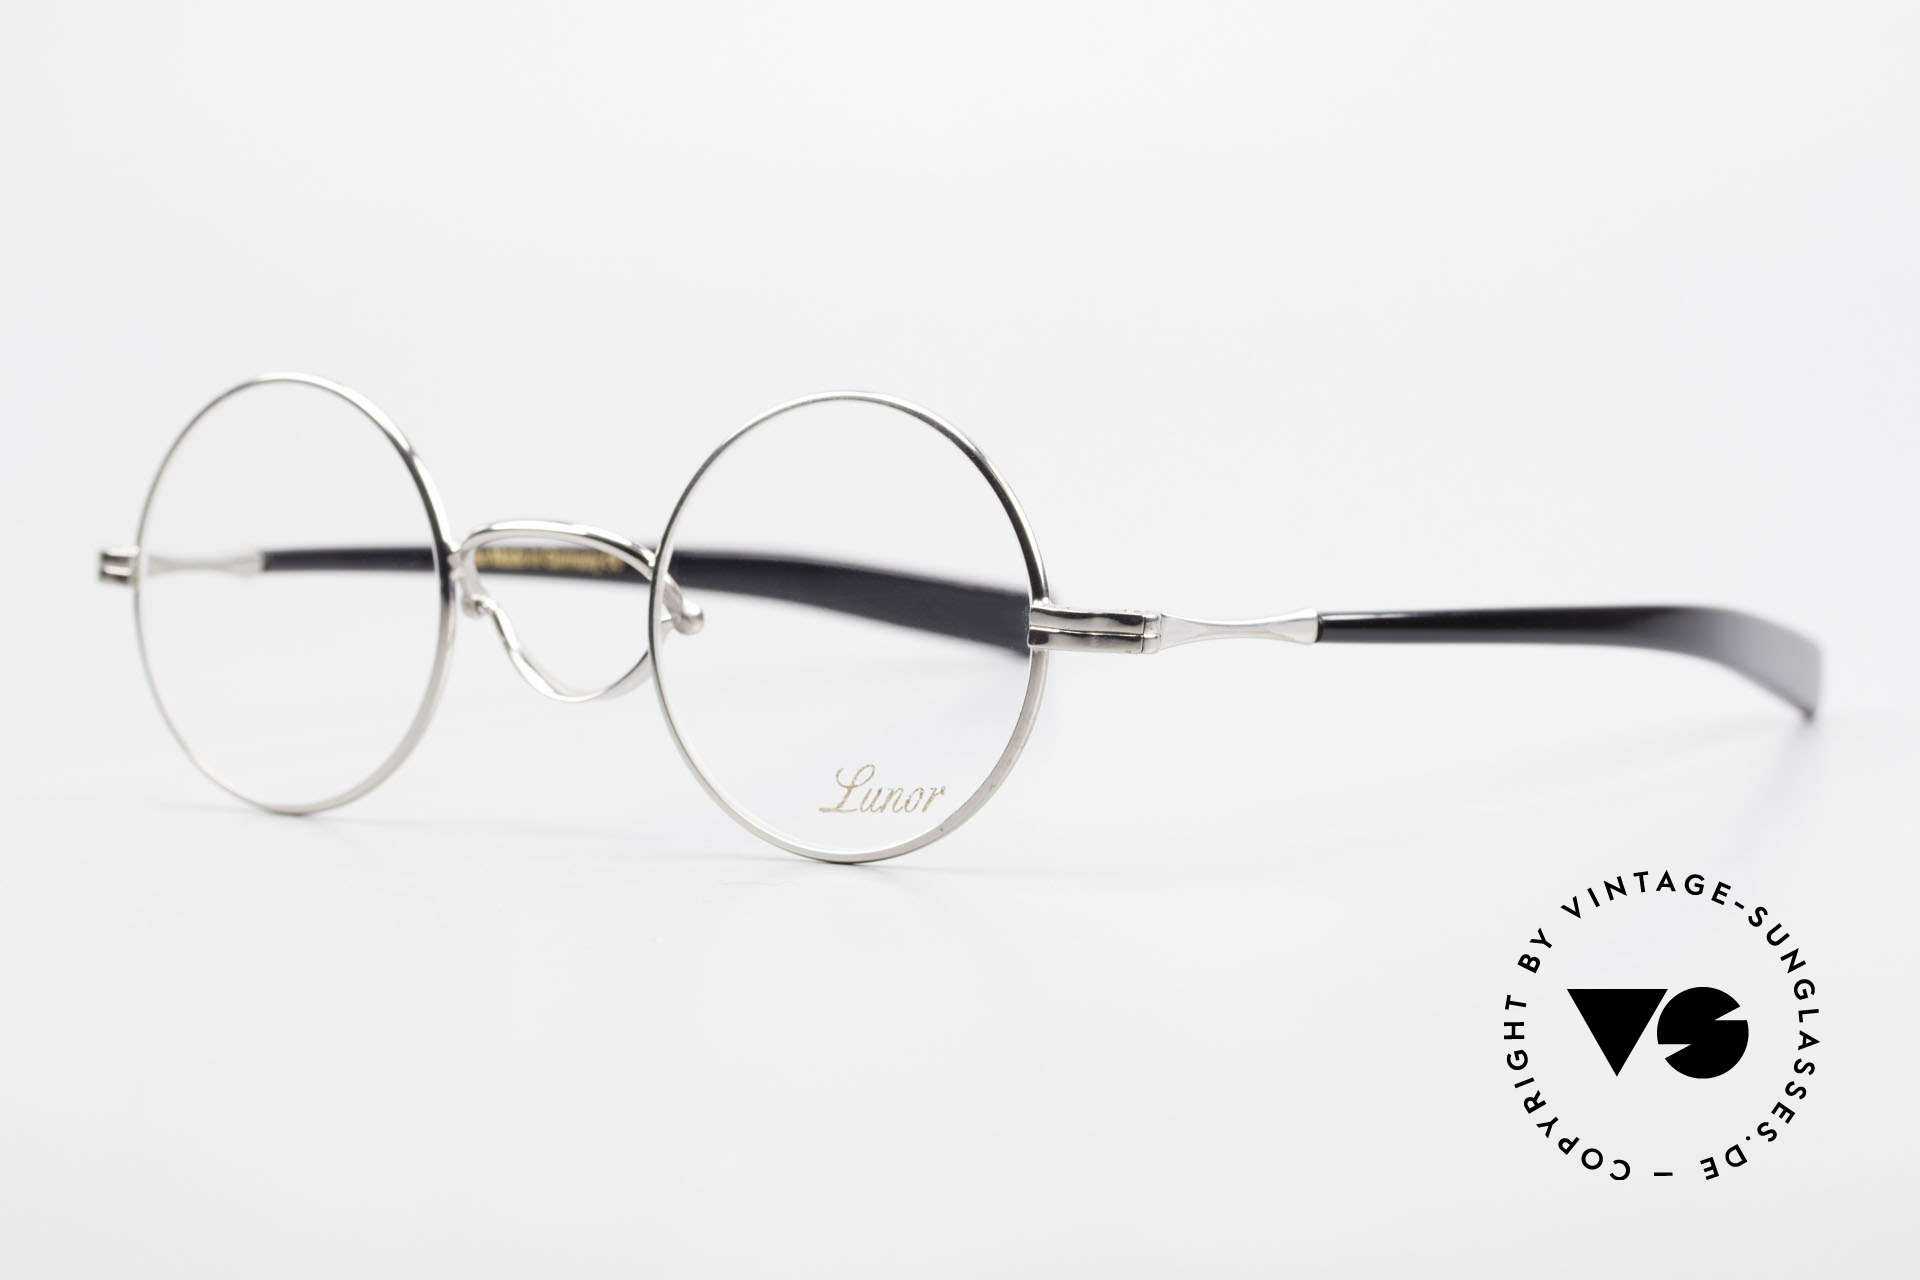 """Lunor Swing A 31 Round Swing Bridge Vintage Glasses, well-known for the """"W-bridge"""" & the plain frame designs, Made for Men and Women"""